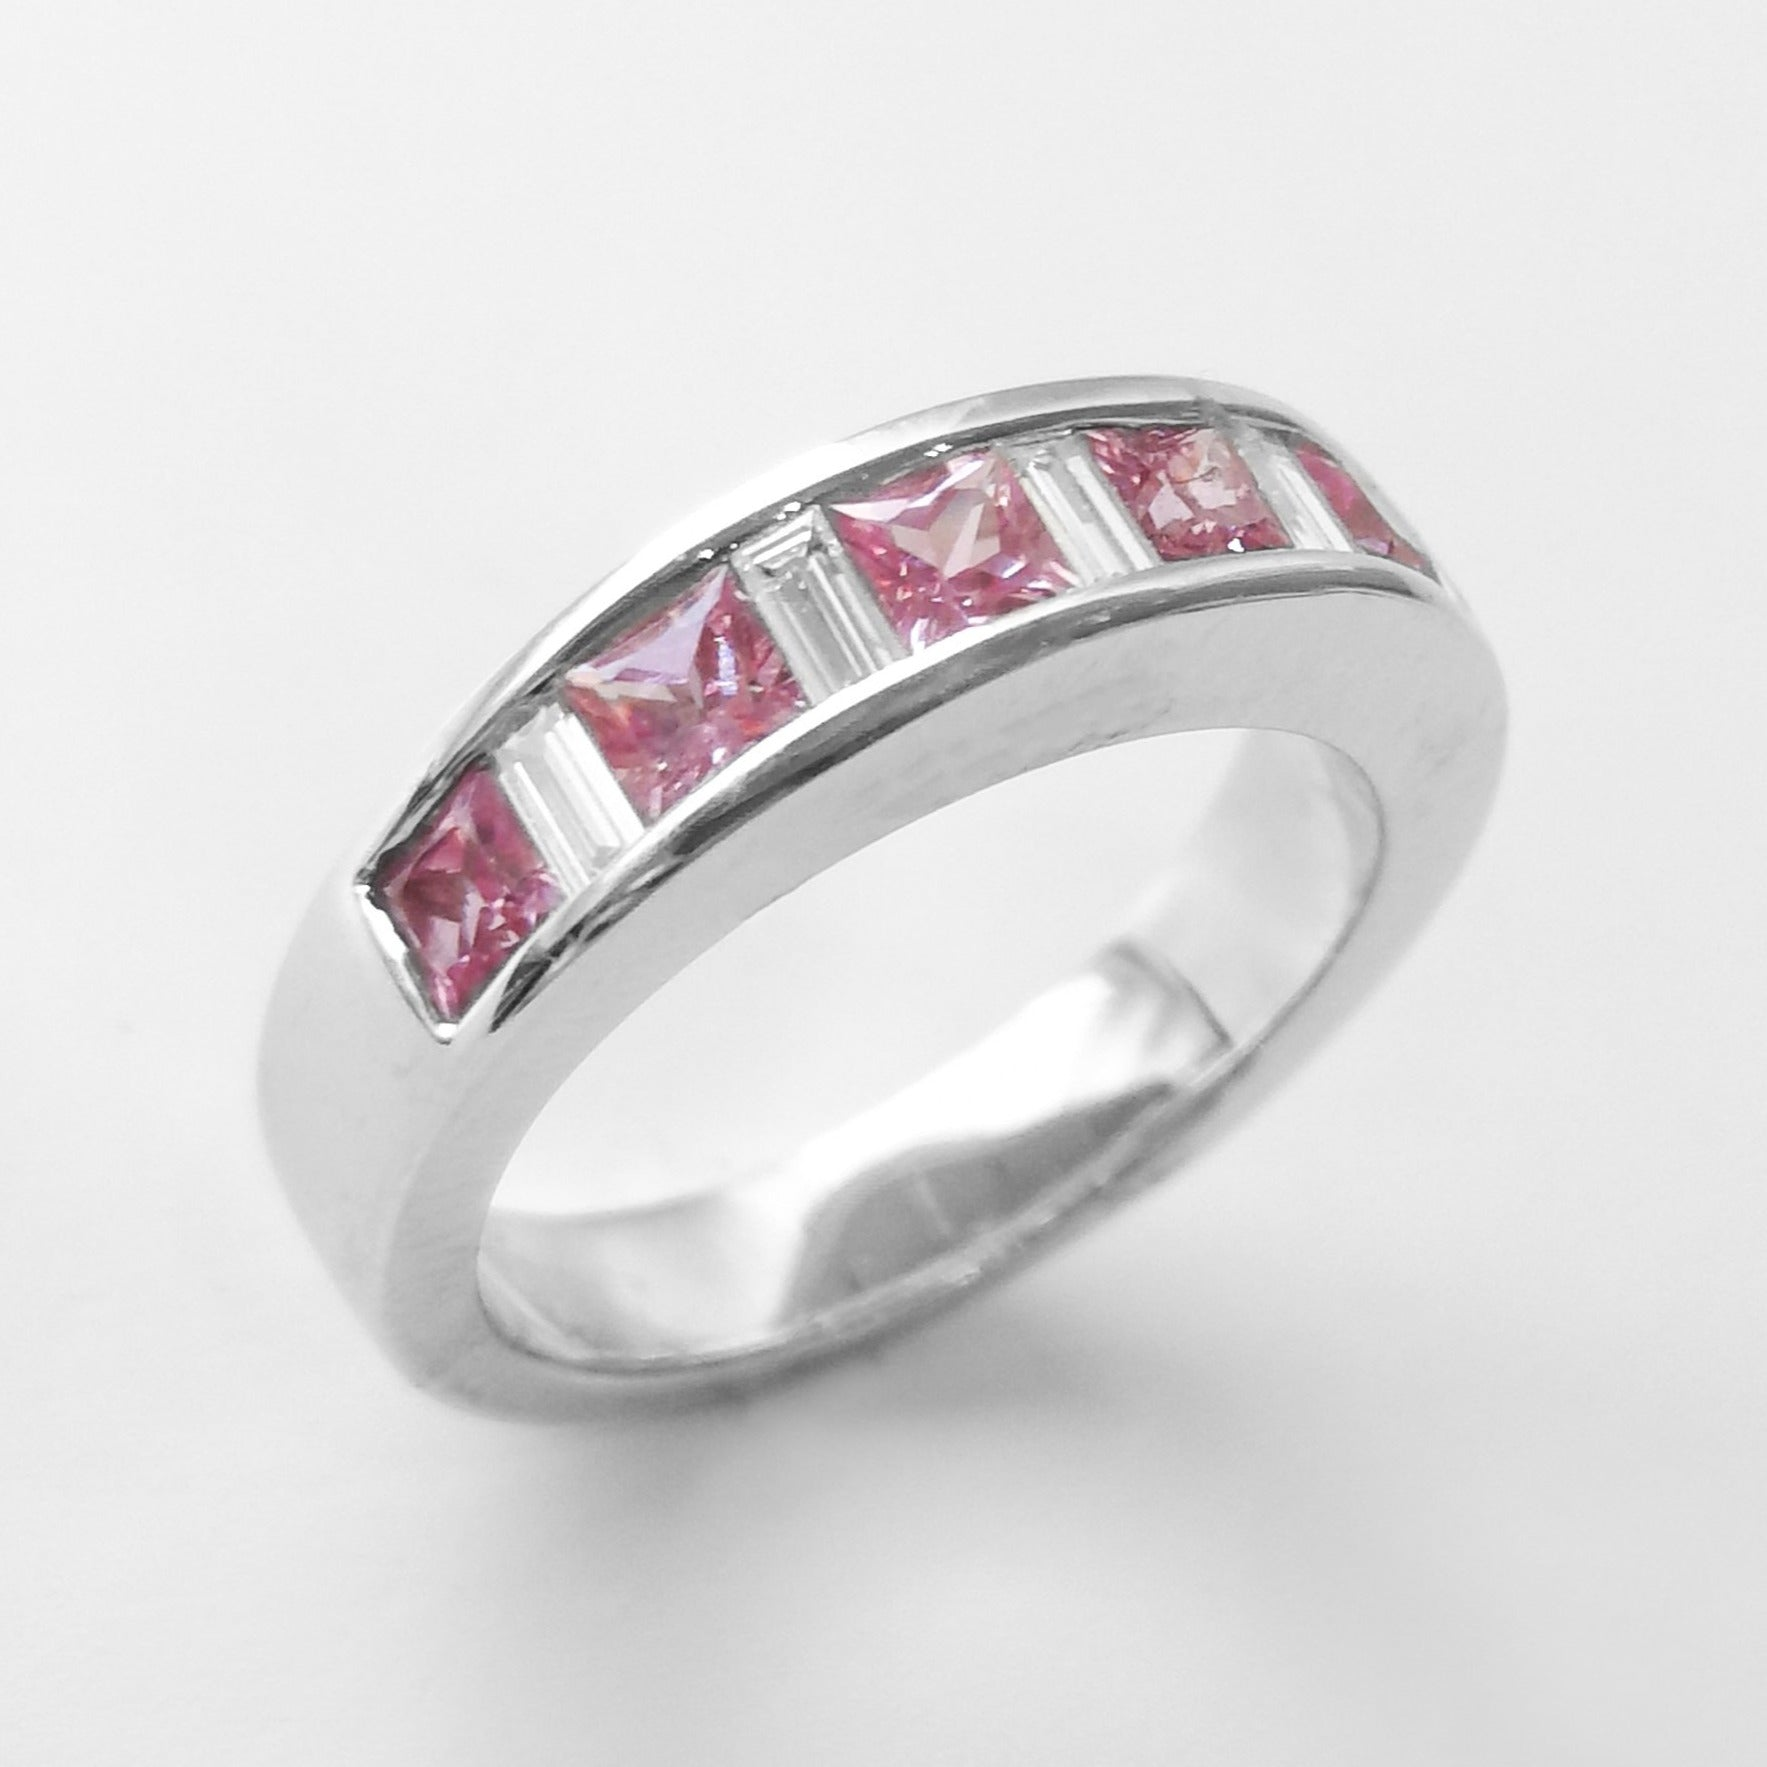 Eternity Ring in 18ct White Gold set with Pink Stones (5.2g) LR-7029